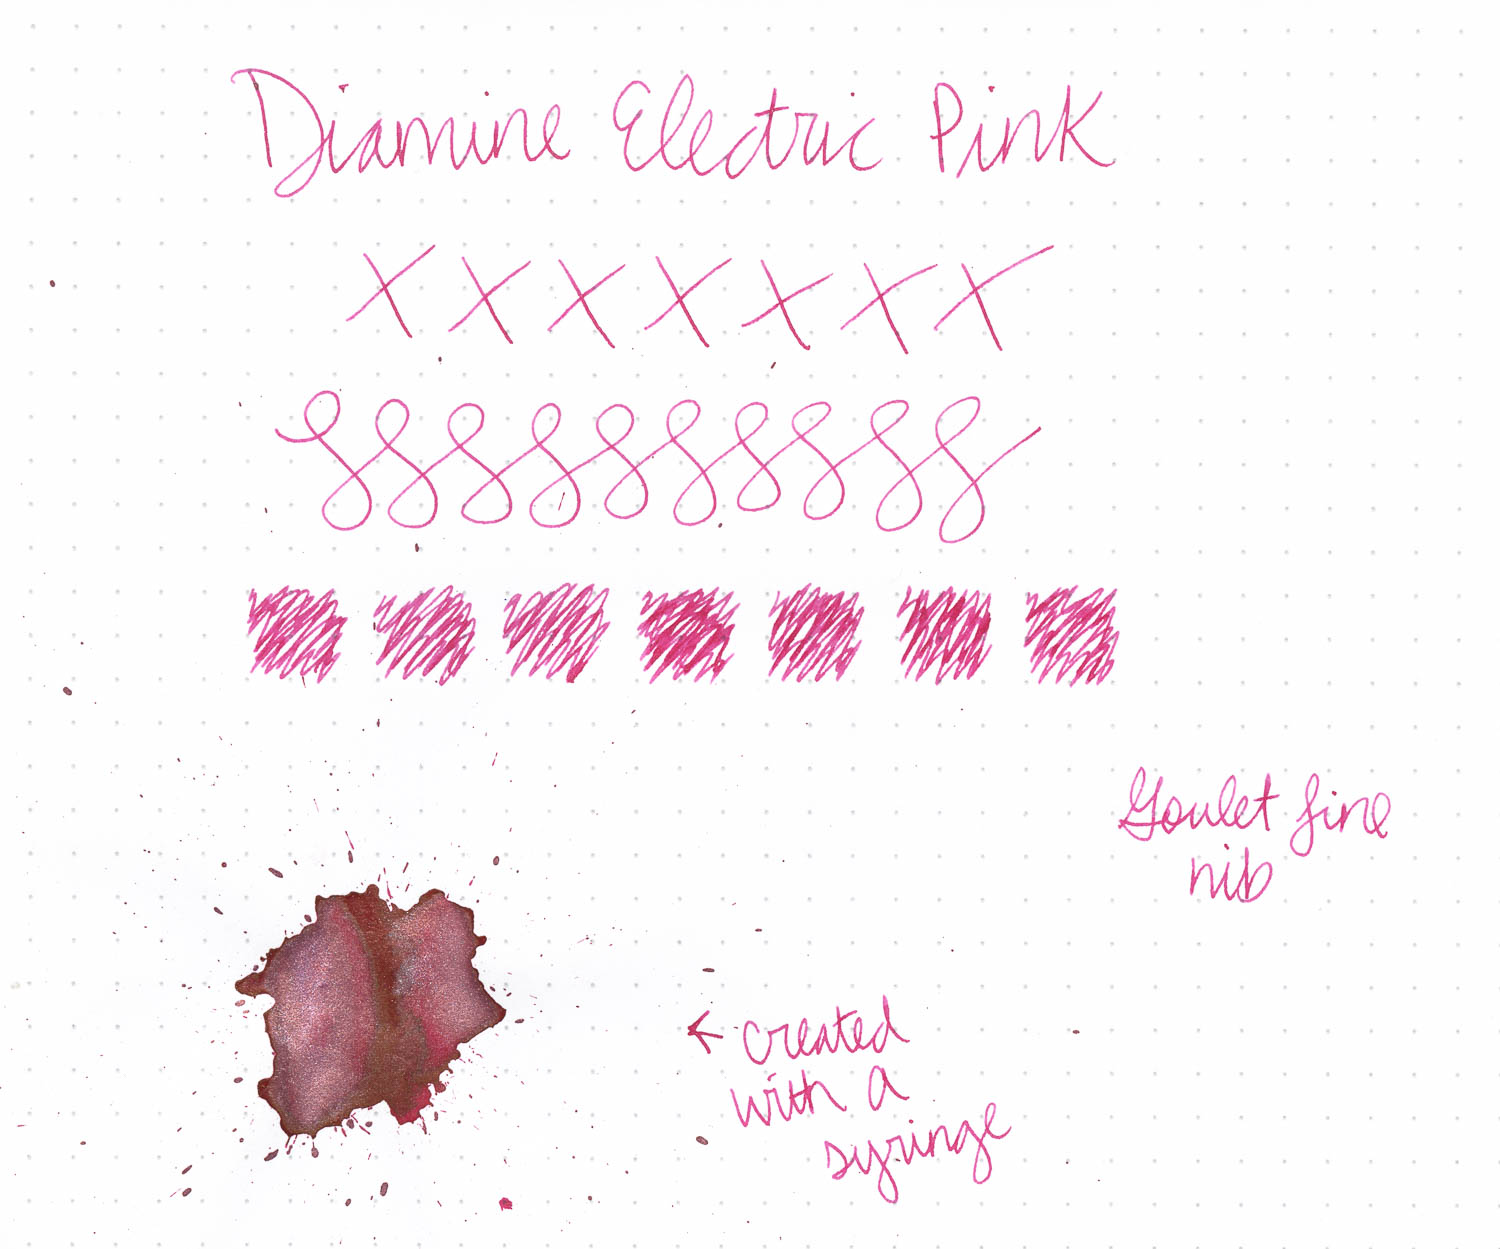 Diamine Electric Pink - 50ml Bottled Ink